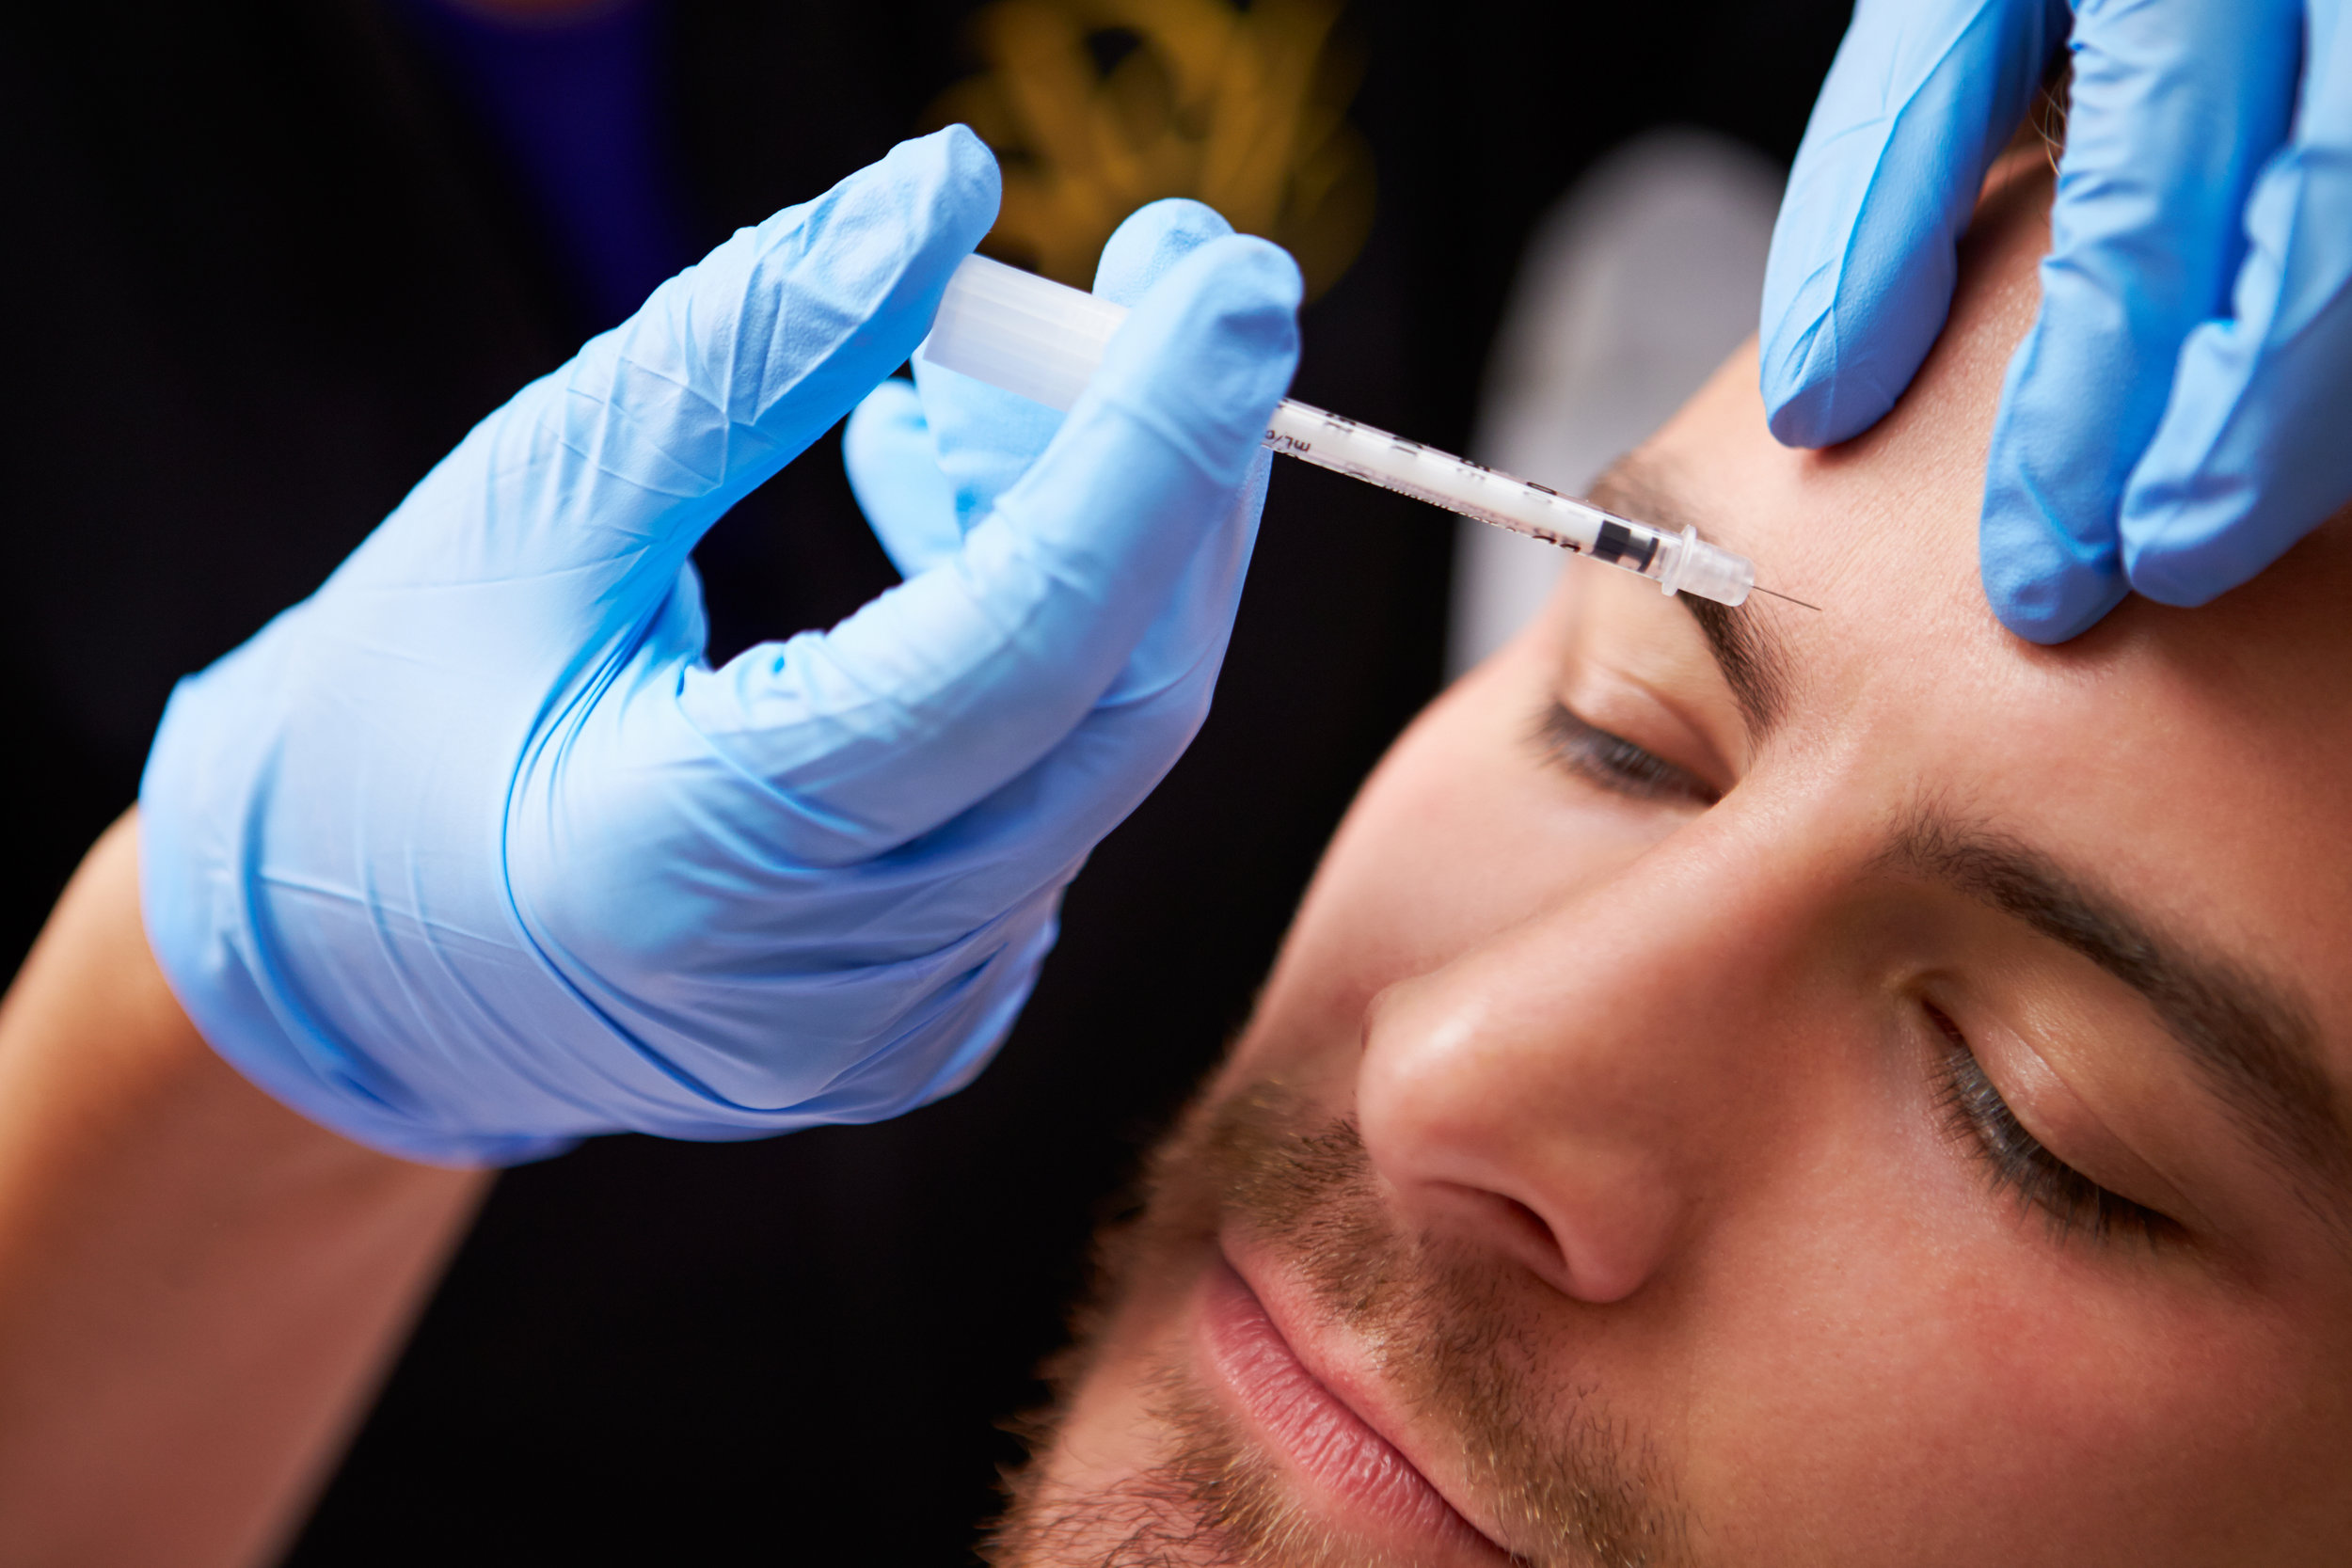 The therapeutic effects of BOTOX treatments can last between 3 and 6 months.*